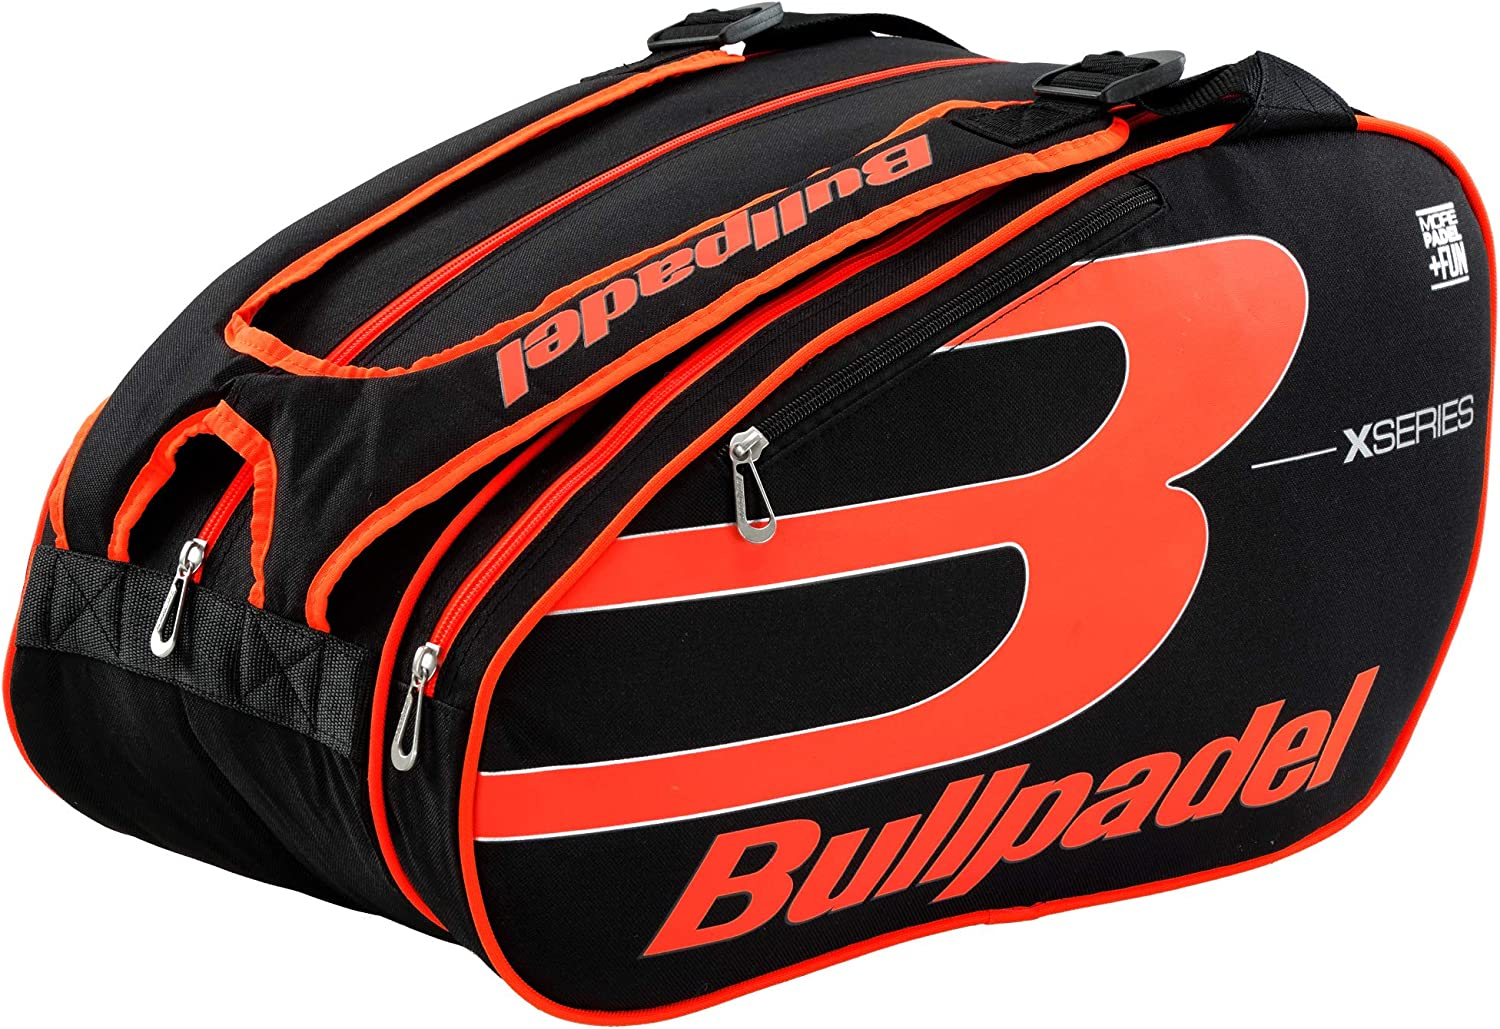 Paletero Bullpadel Fun X-Series Orange: Amazon.es: Deportes y aire ...